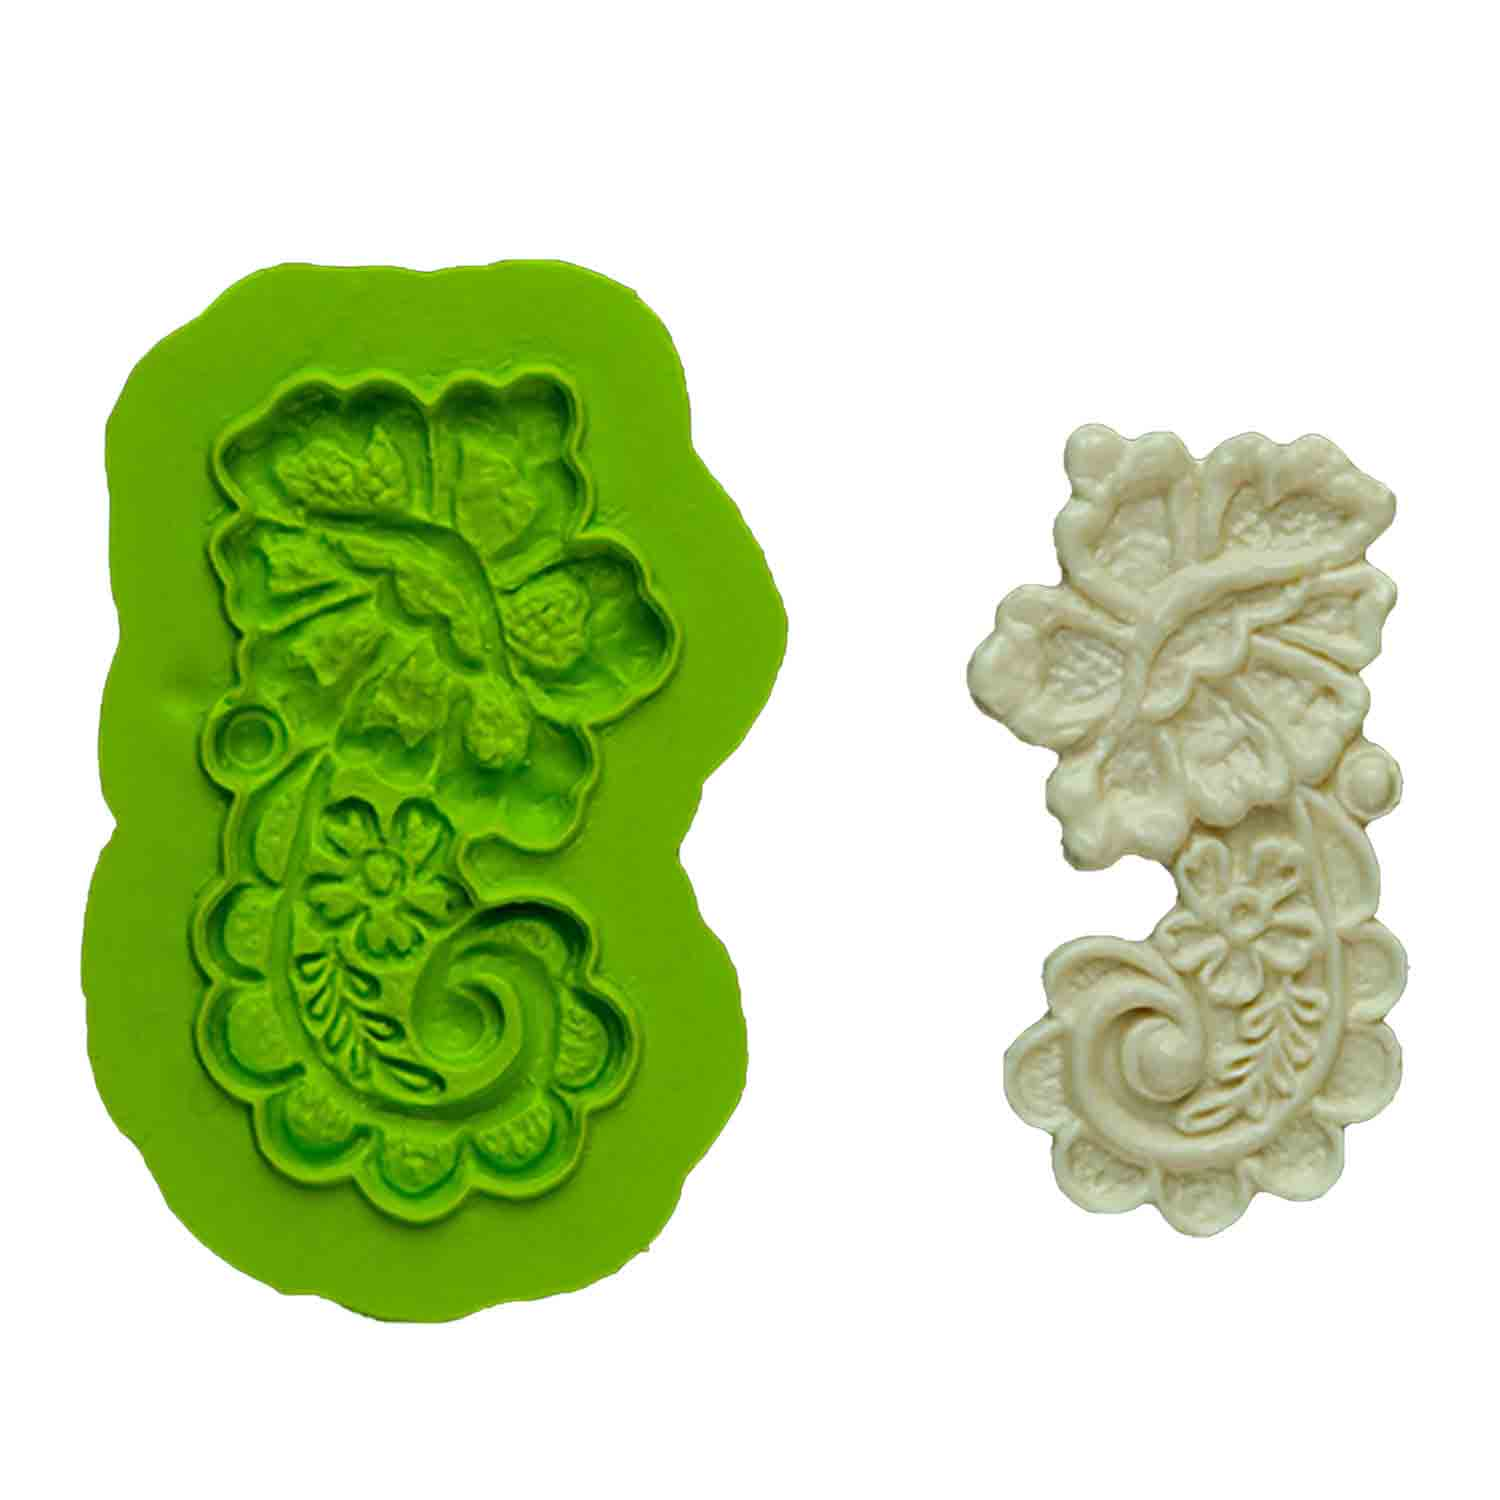 Rose Lace Silicone Mold